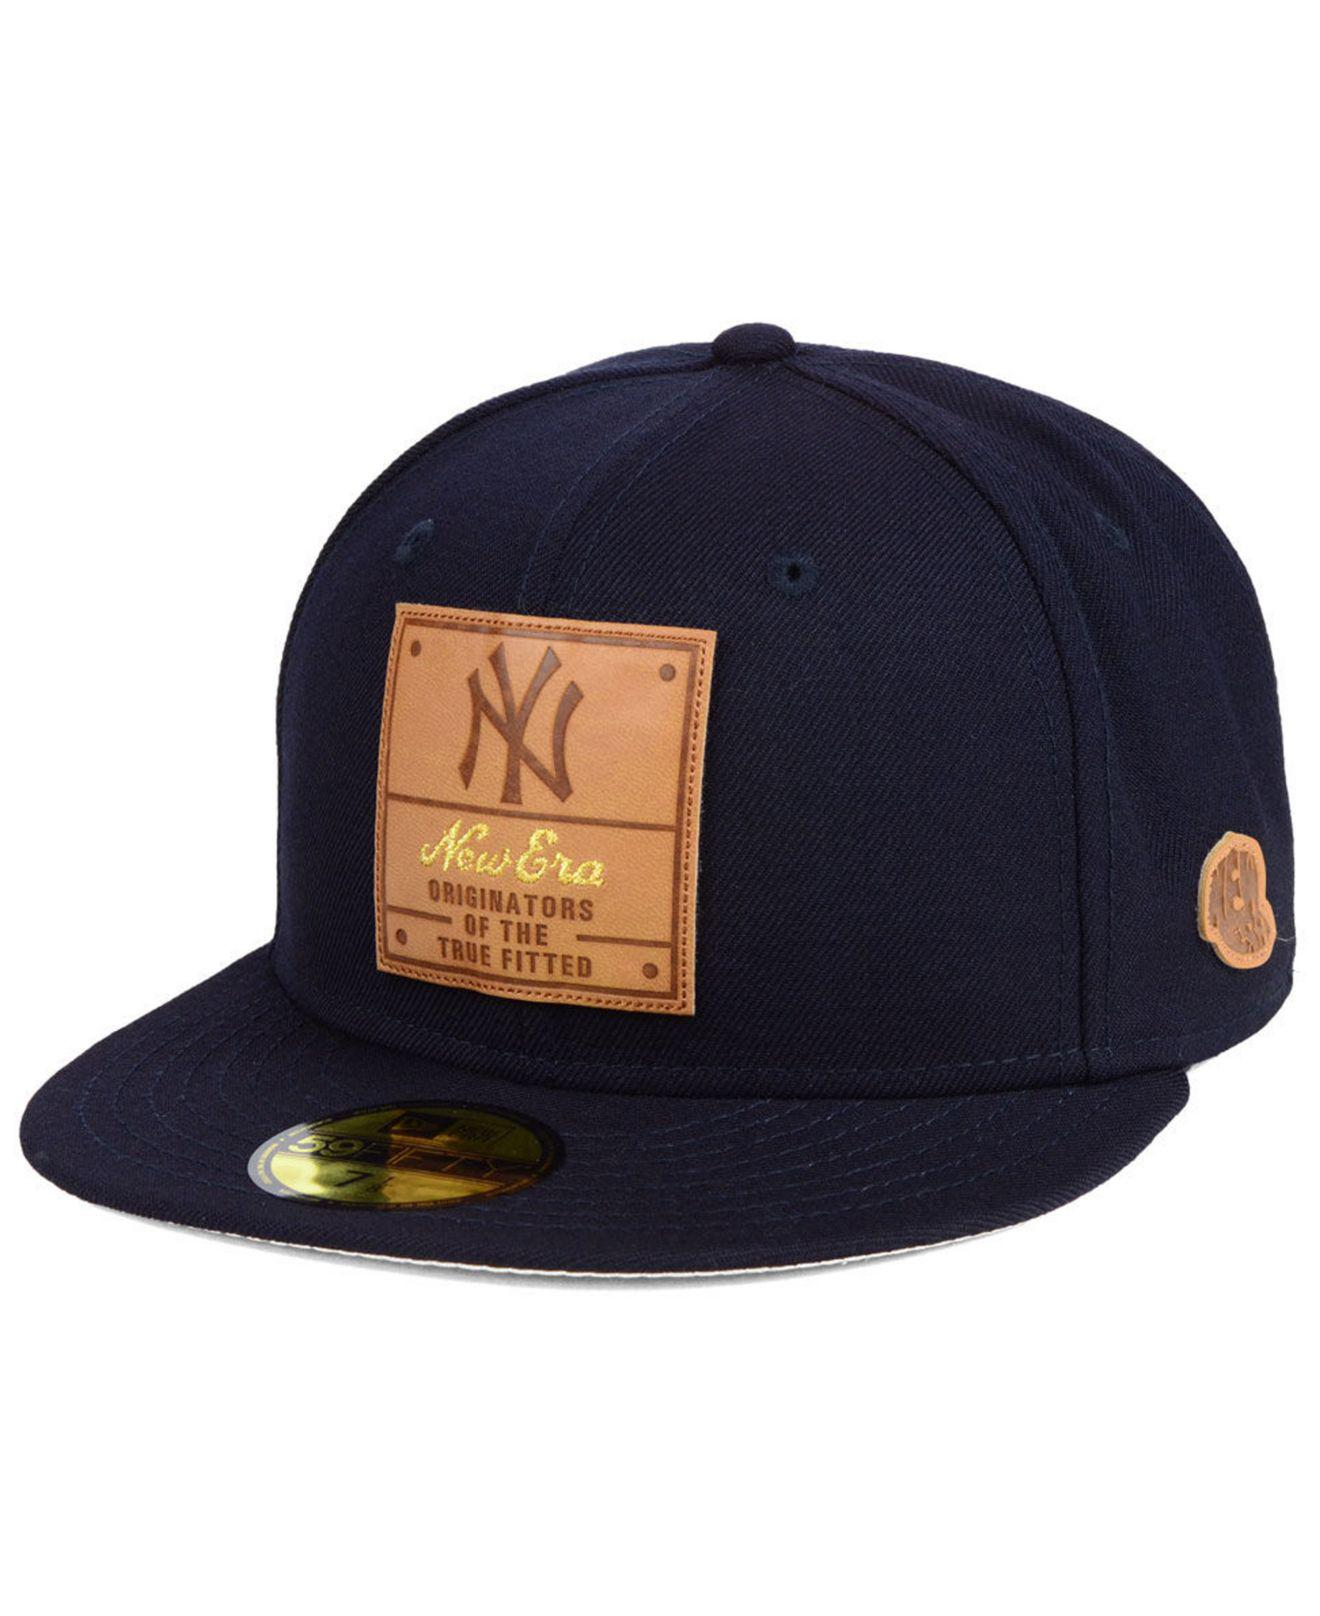 ab91aff9f71 Lyst - KTZ New York Yankees Vintage Team Color 59fifty Fitted Cap in ...